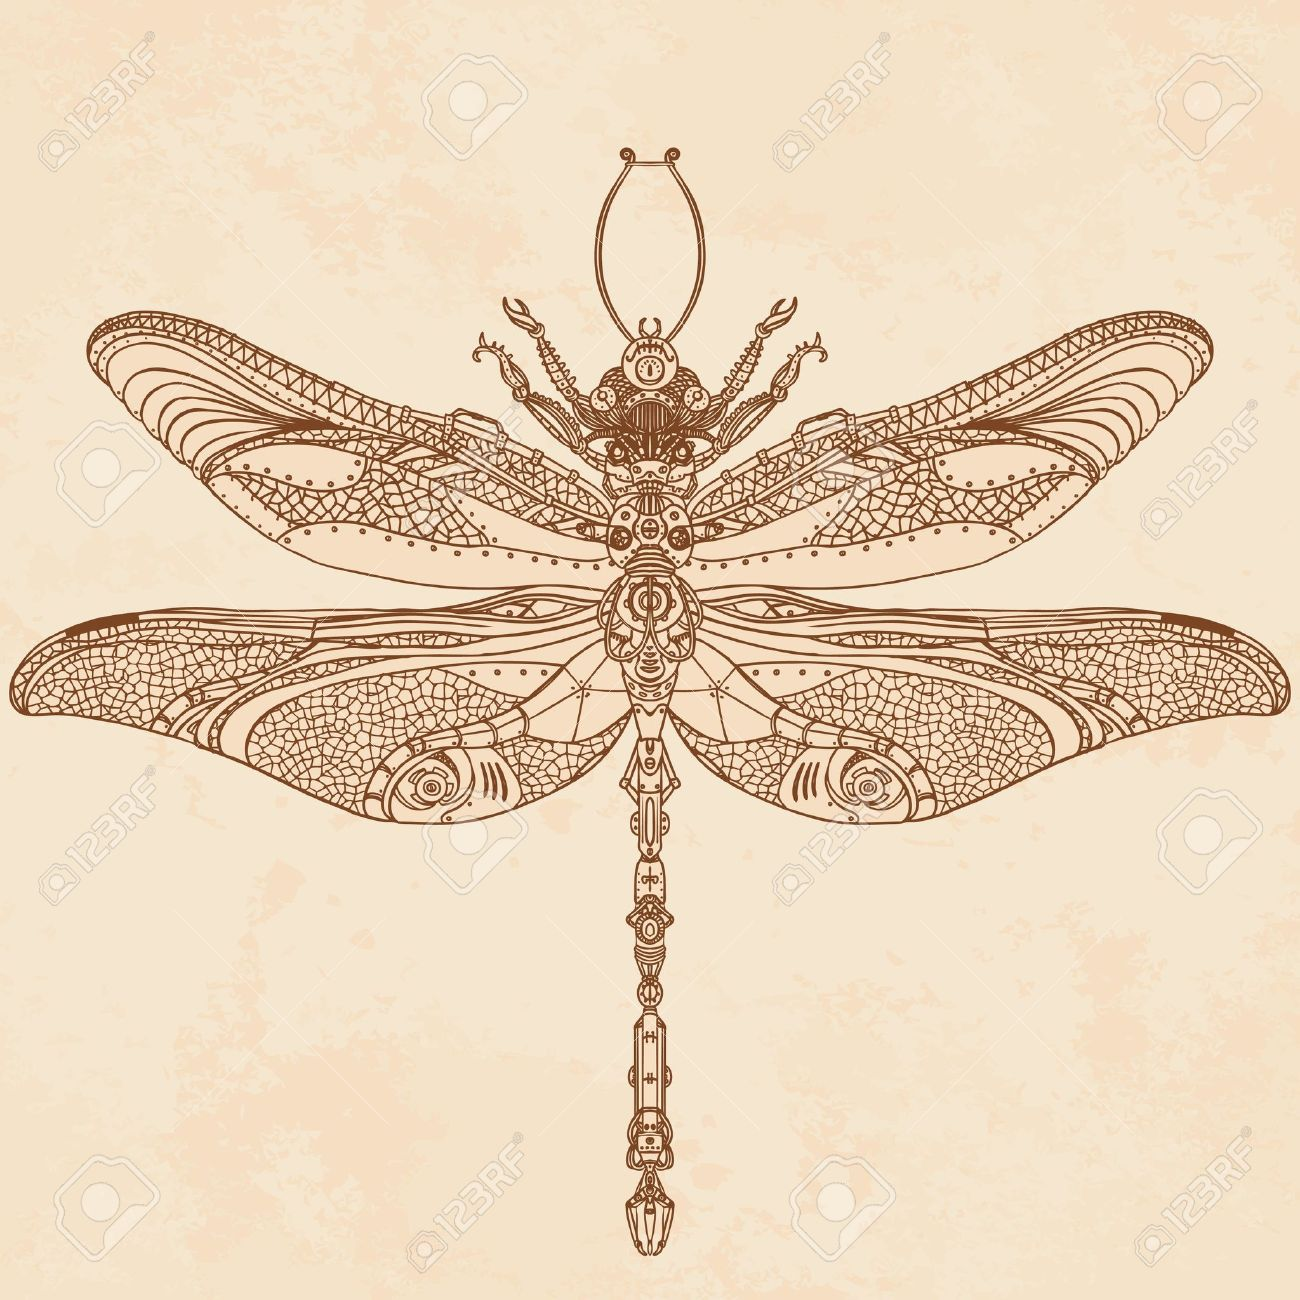 10 553 dragonfly cliparts stock vector and royalty free dragonfly